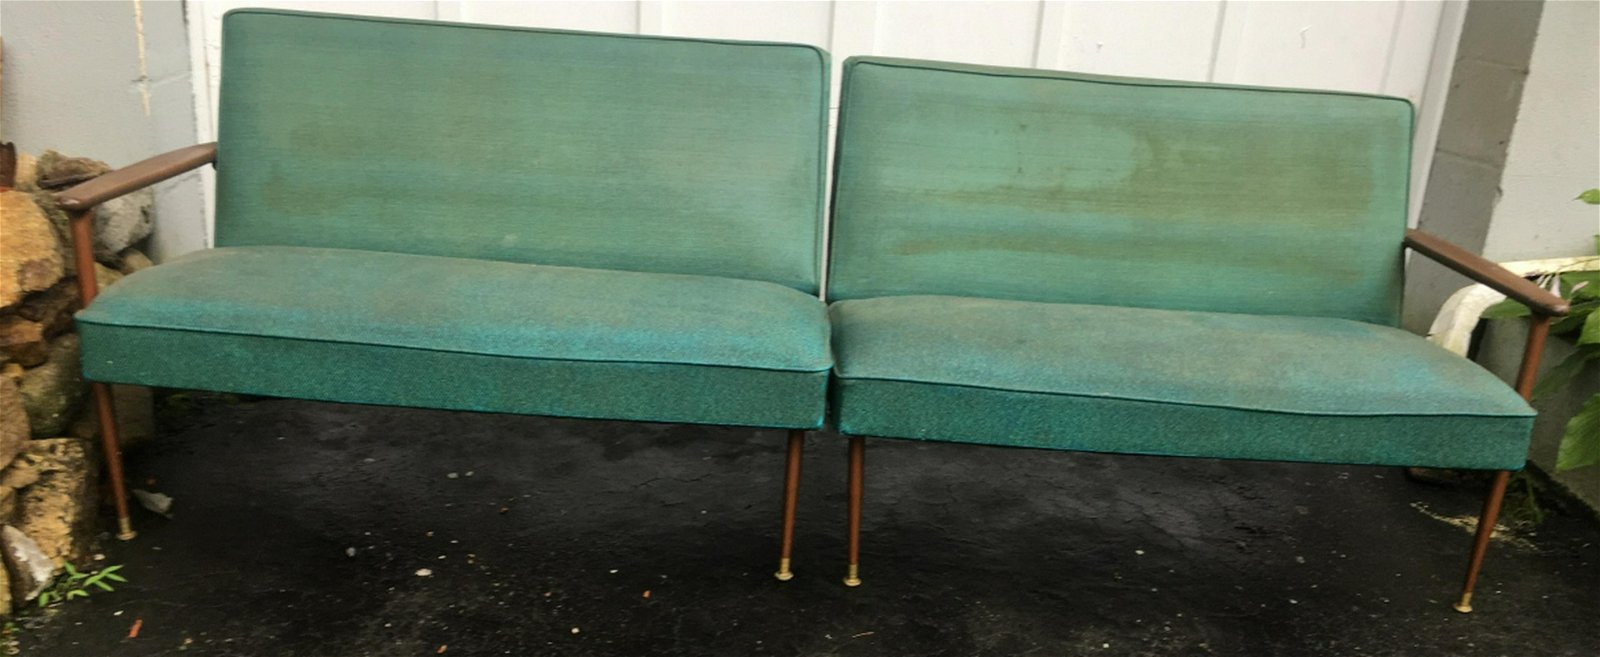 Vintage Mid Century Modern Sofa / Couch